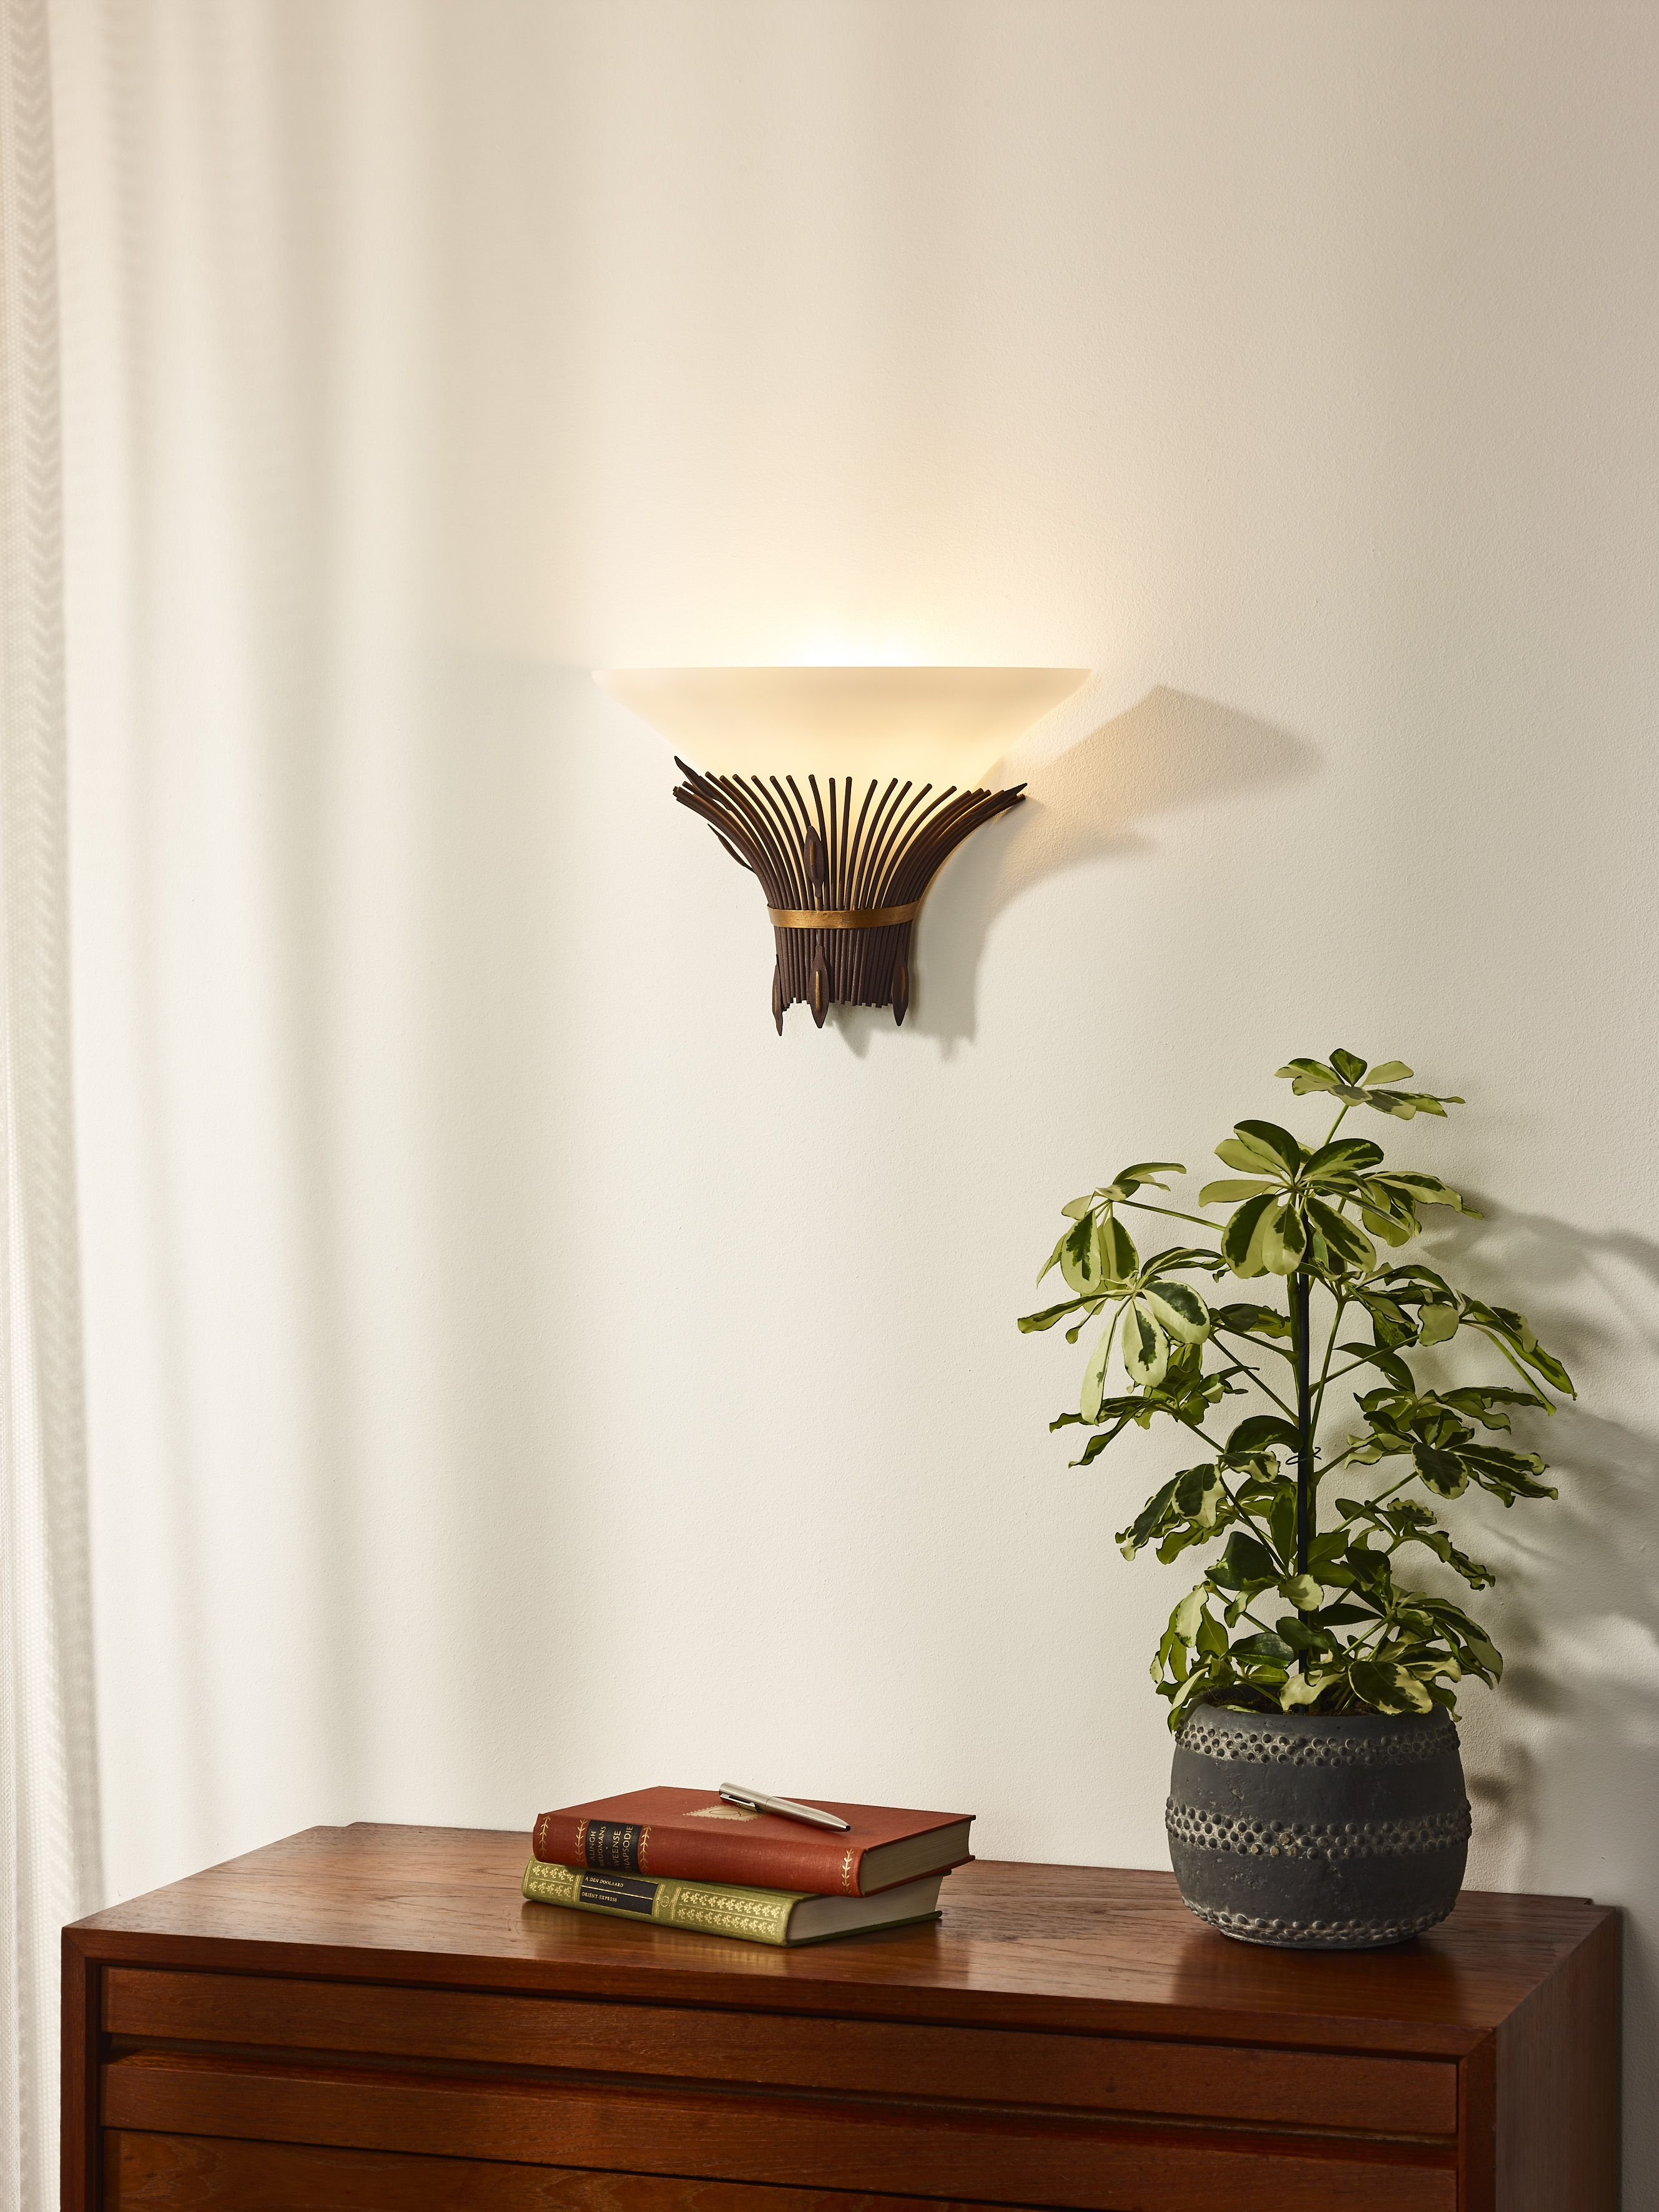 Lucide Canna Applique Murale 1xe14 Rouille Verlichting